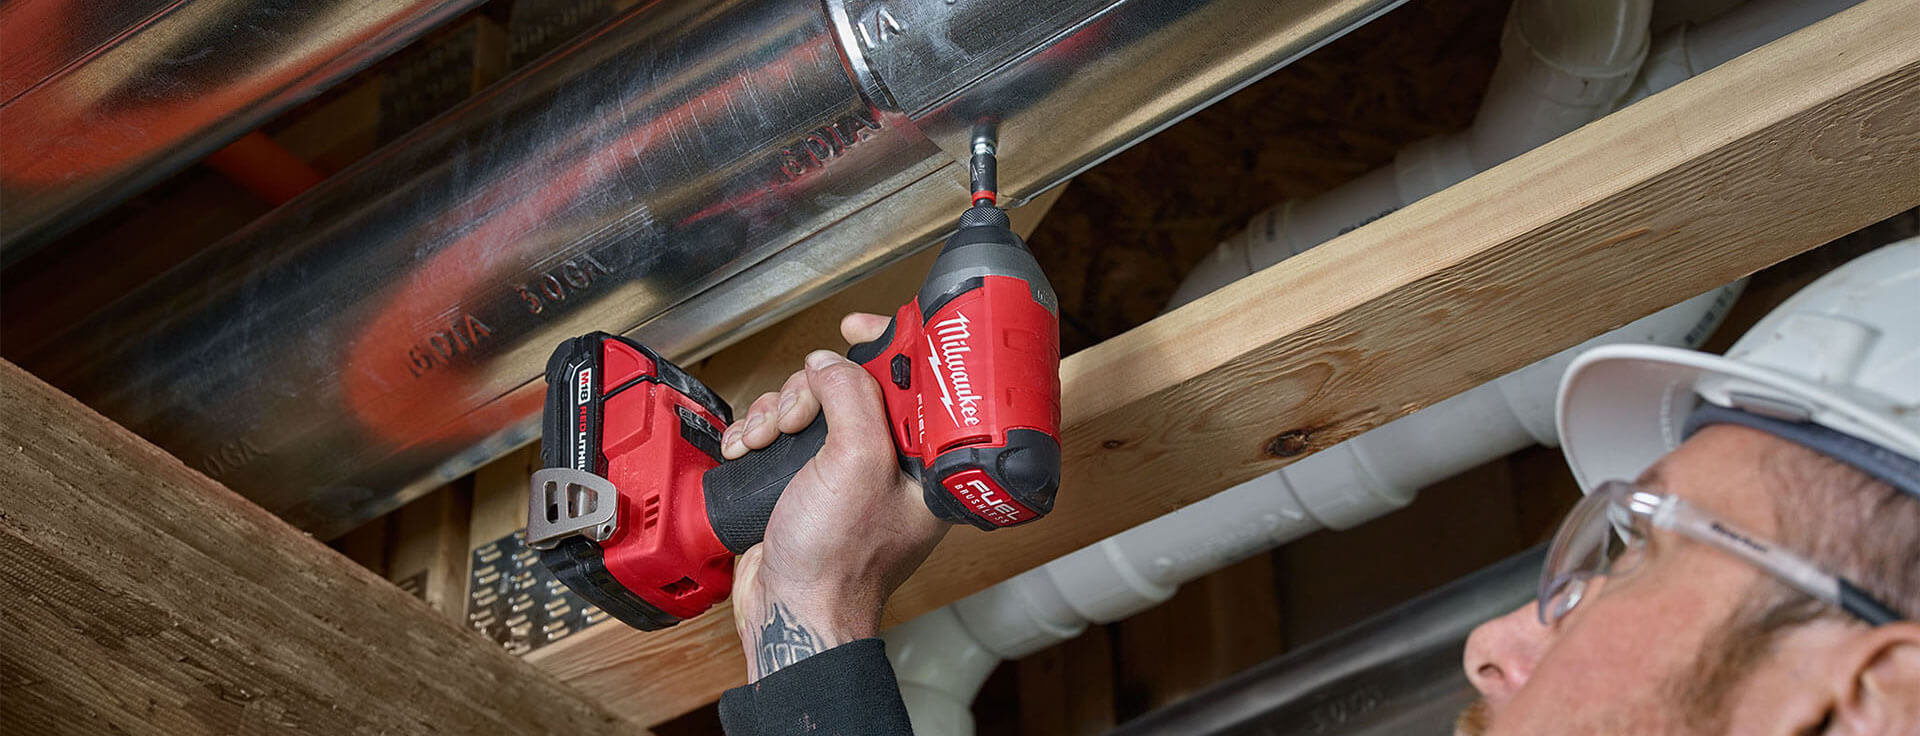 Drill from Fasteners Inc. in Sacramento, CA | Authorized Distributor of  Milwaukee Tool